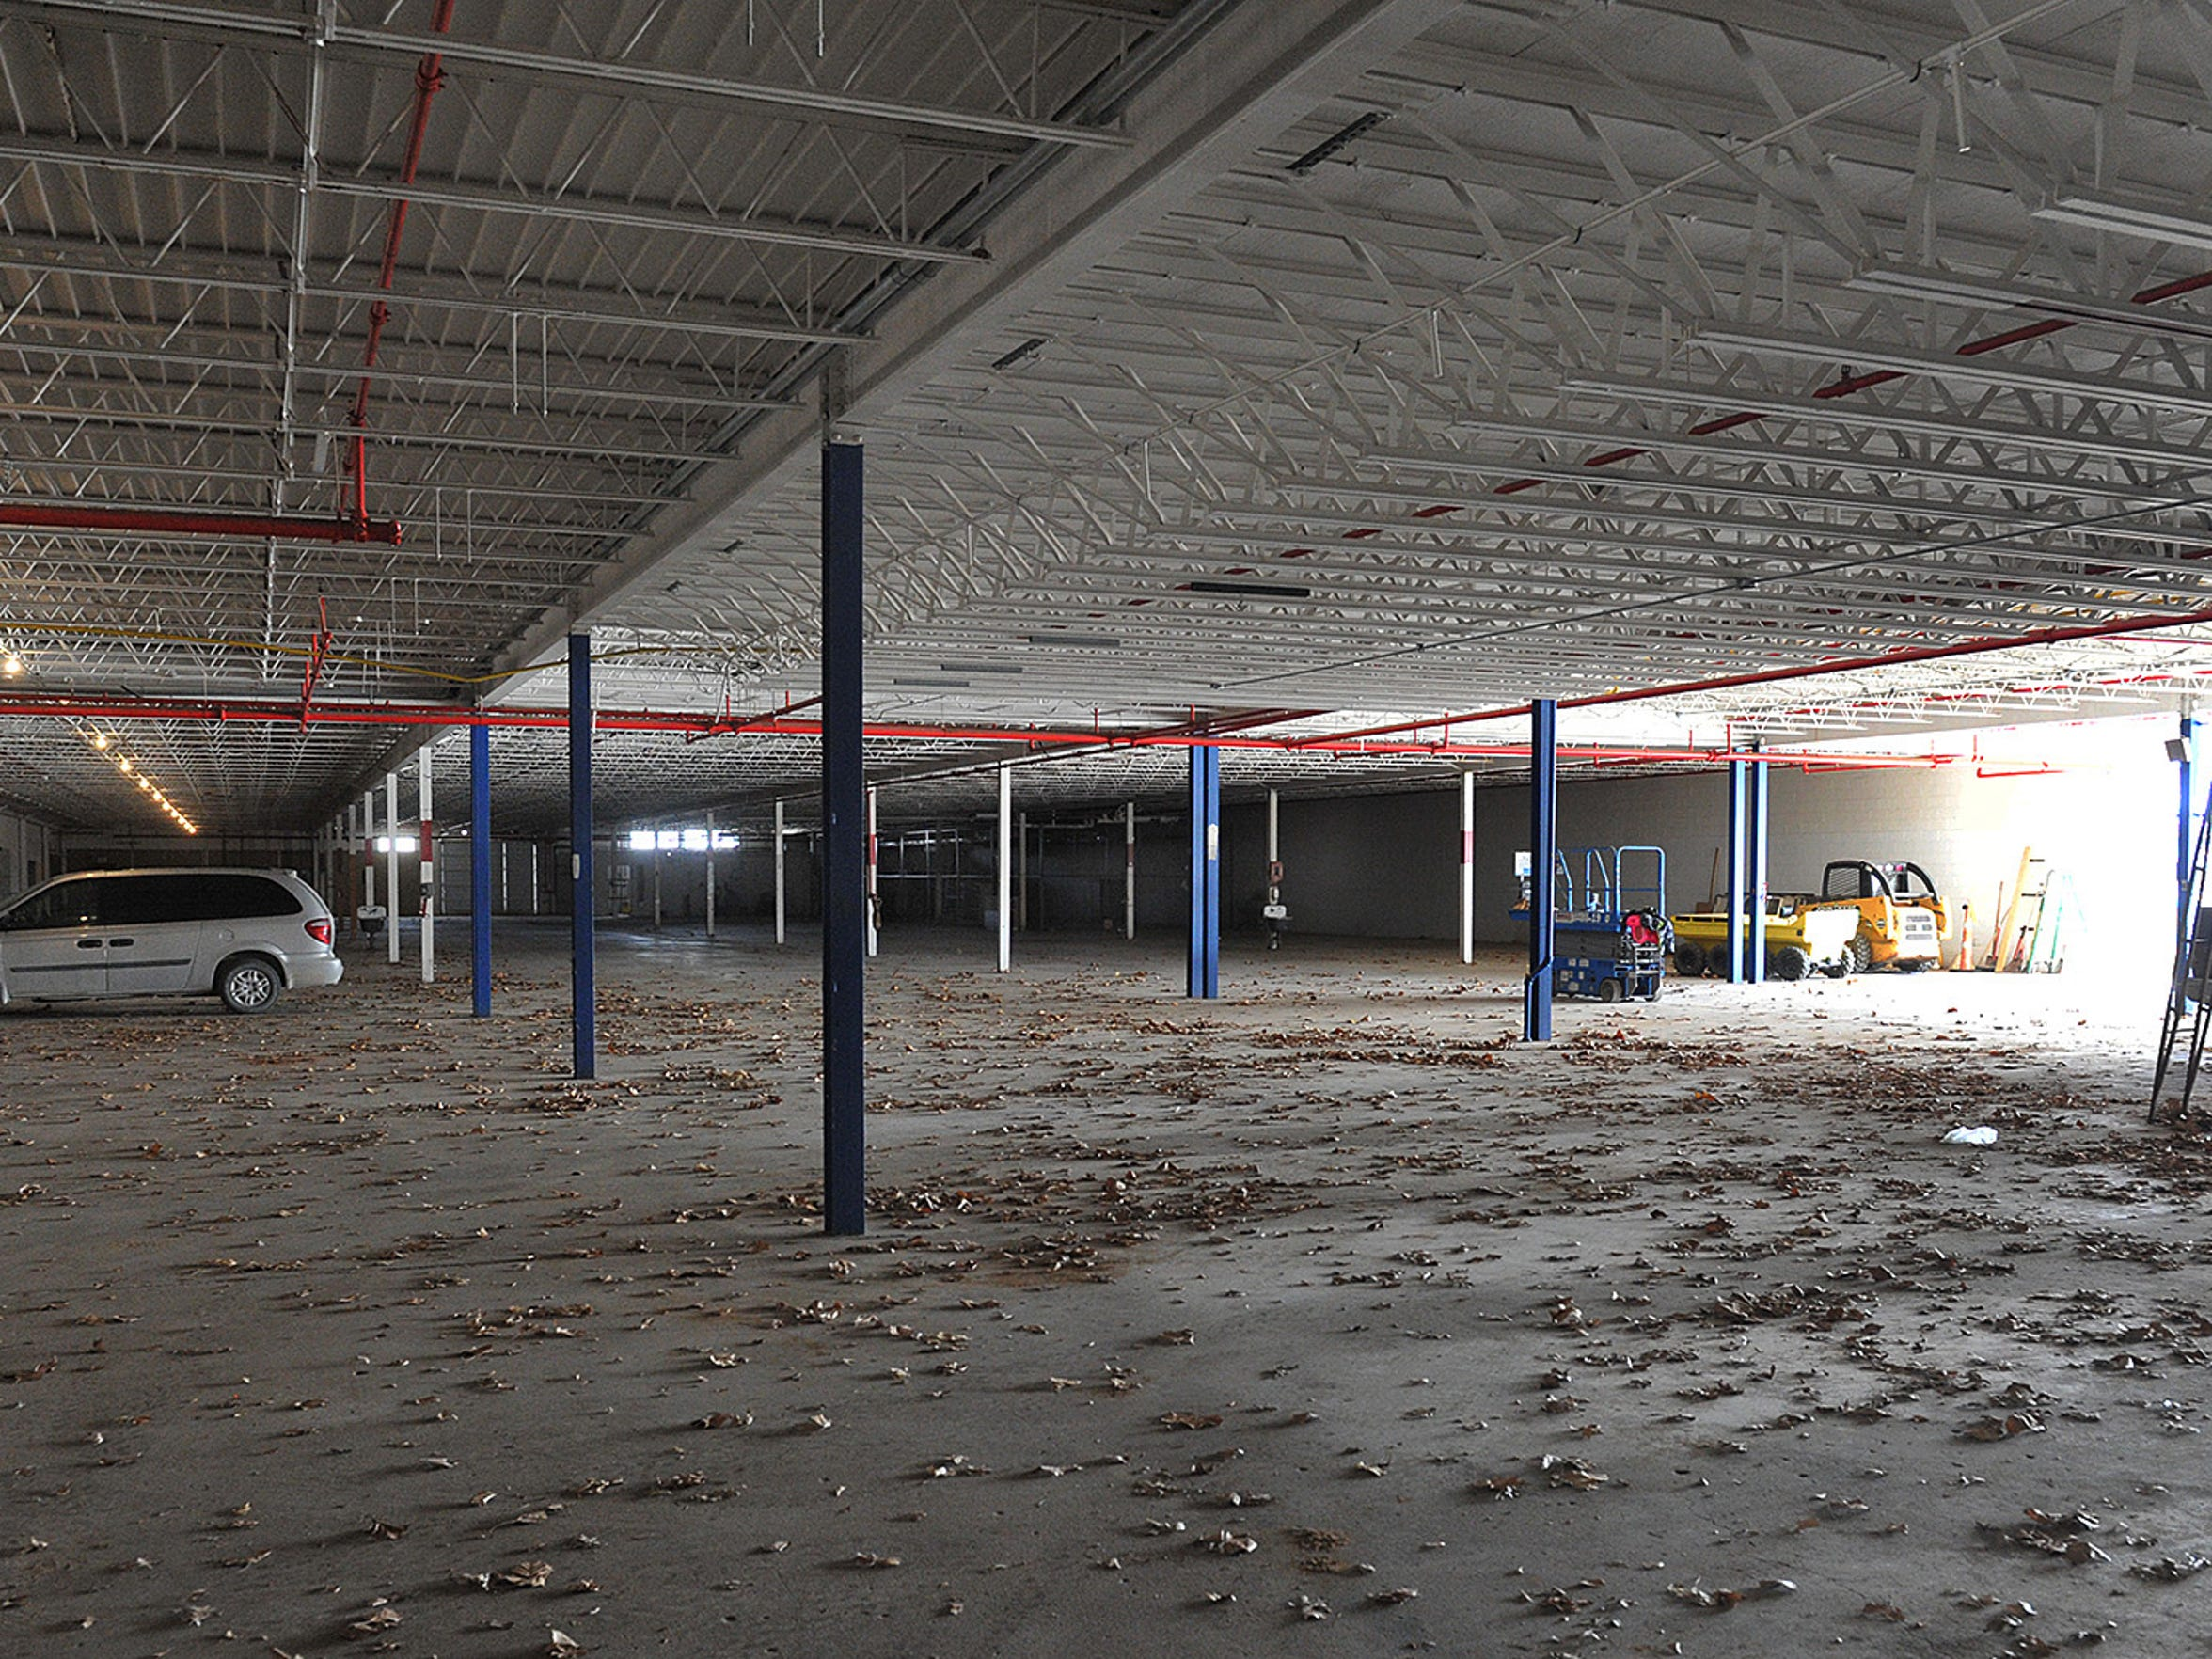 Part of the former Nocona Boot Co. building, a 106,000-square-foot